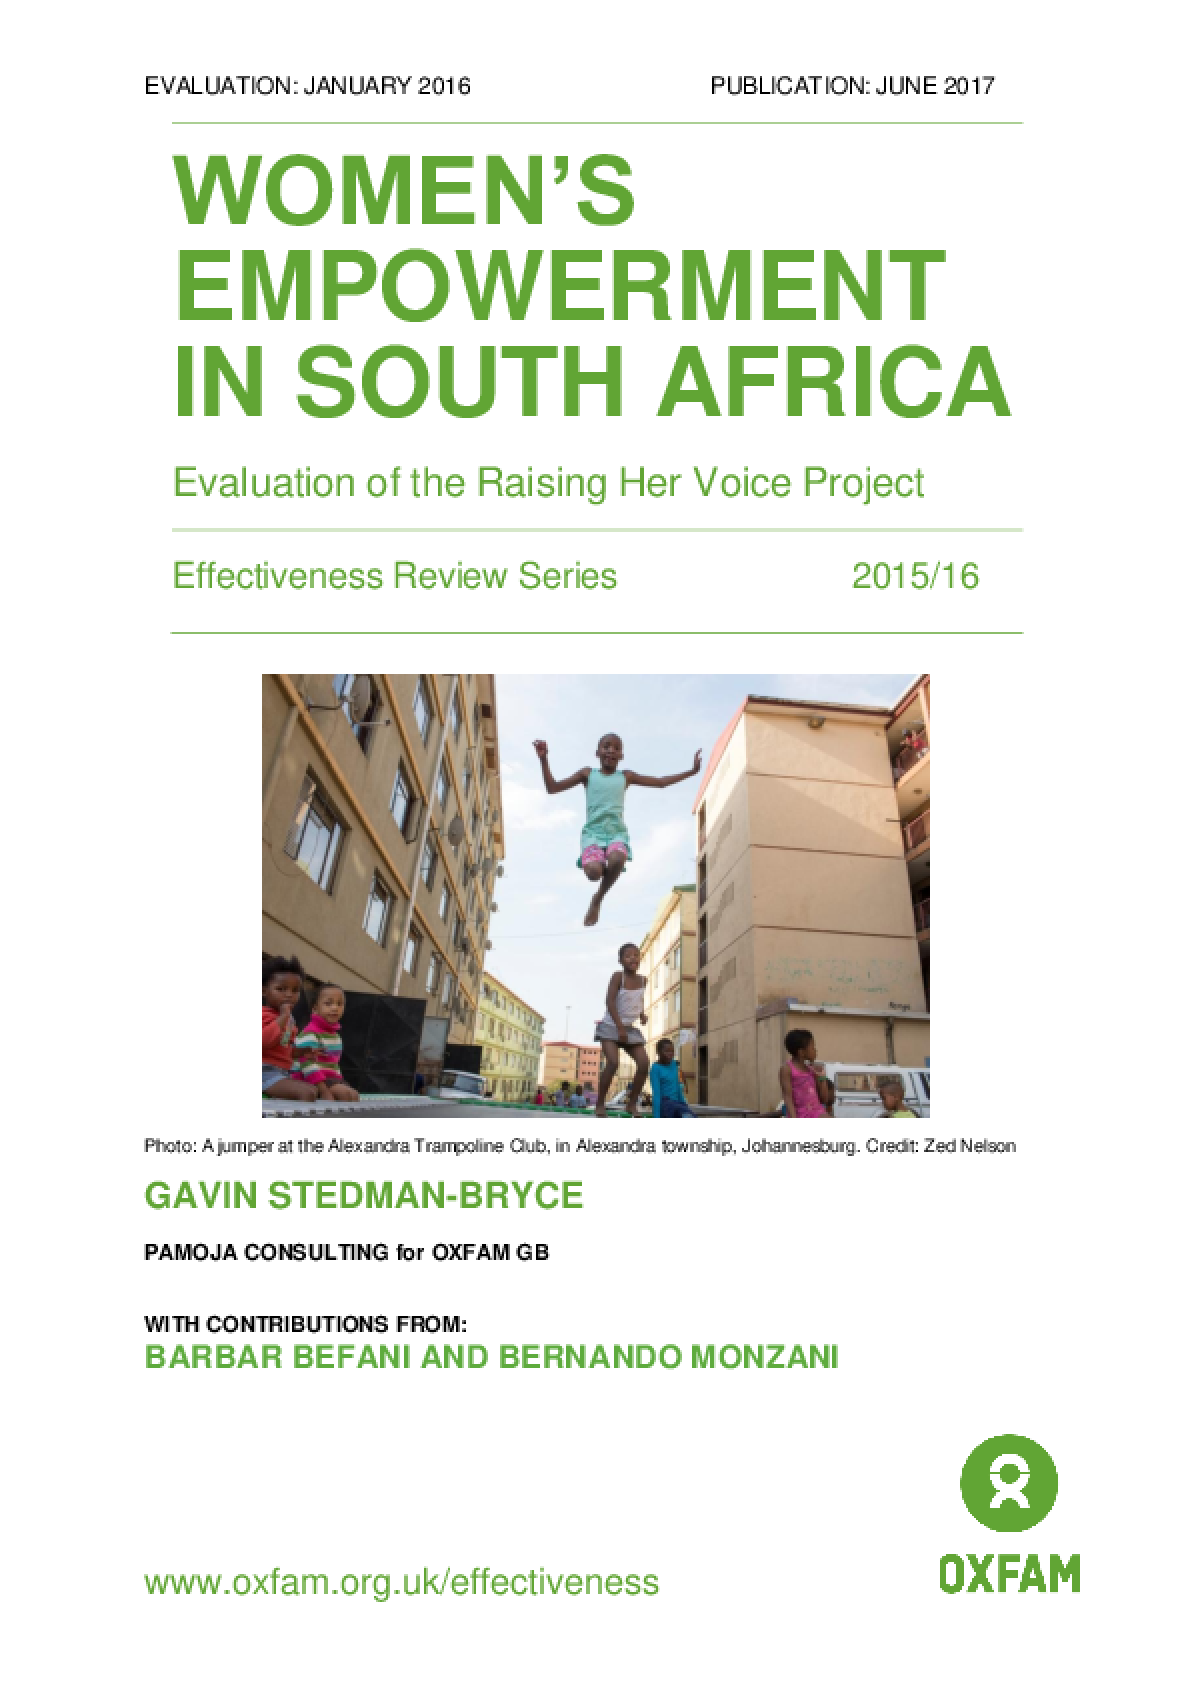 Women's empowerment in South Africa: Evaluation of the Raising Her Voice project